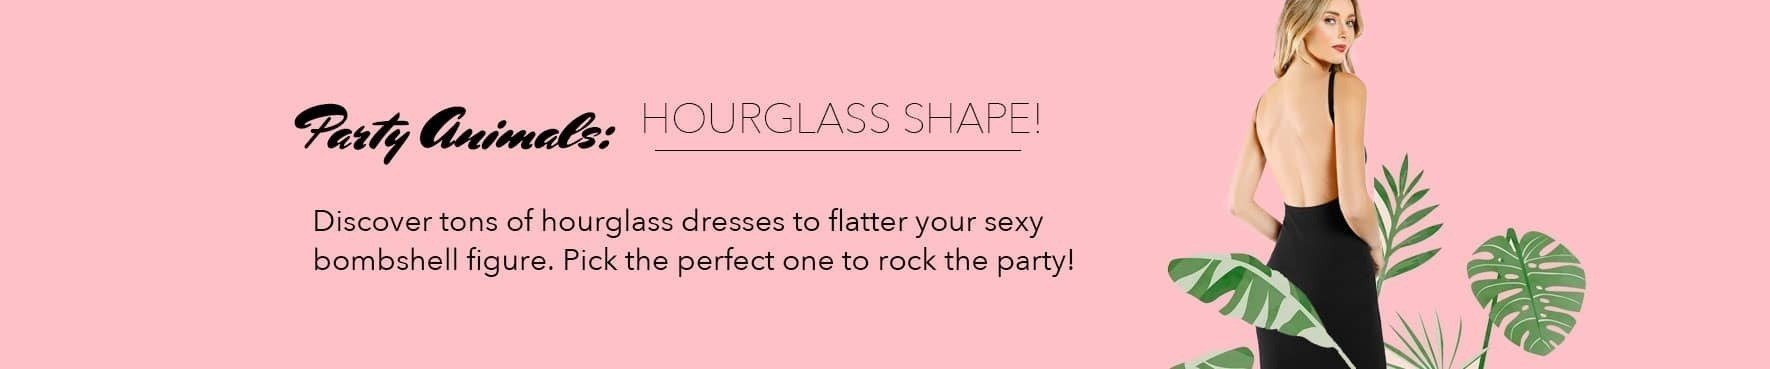 HOURGLASS SHAPE